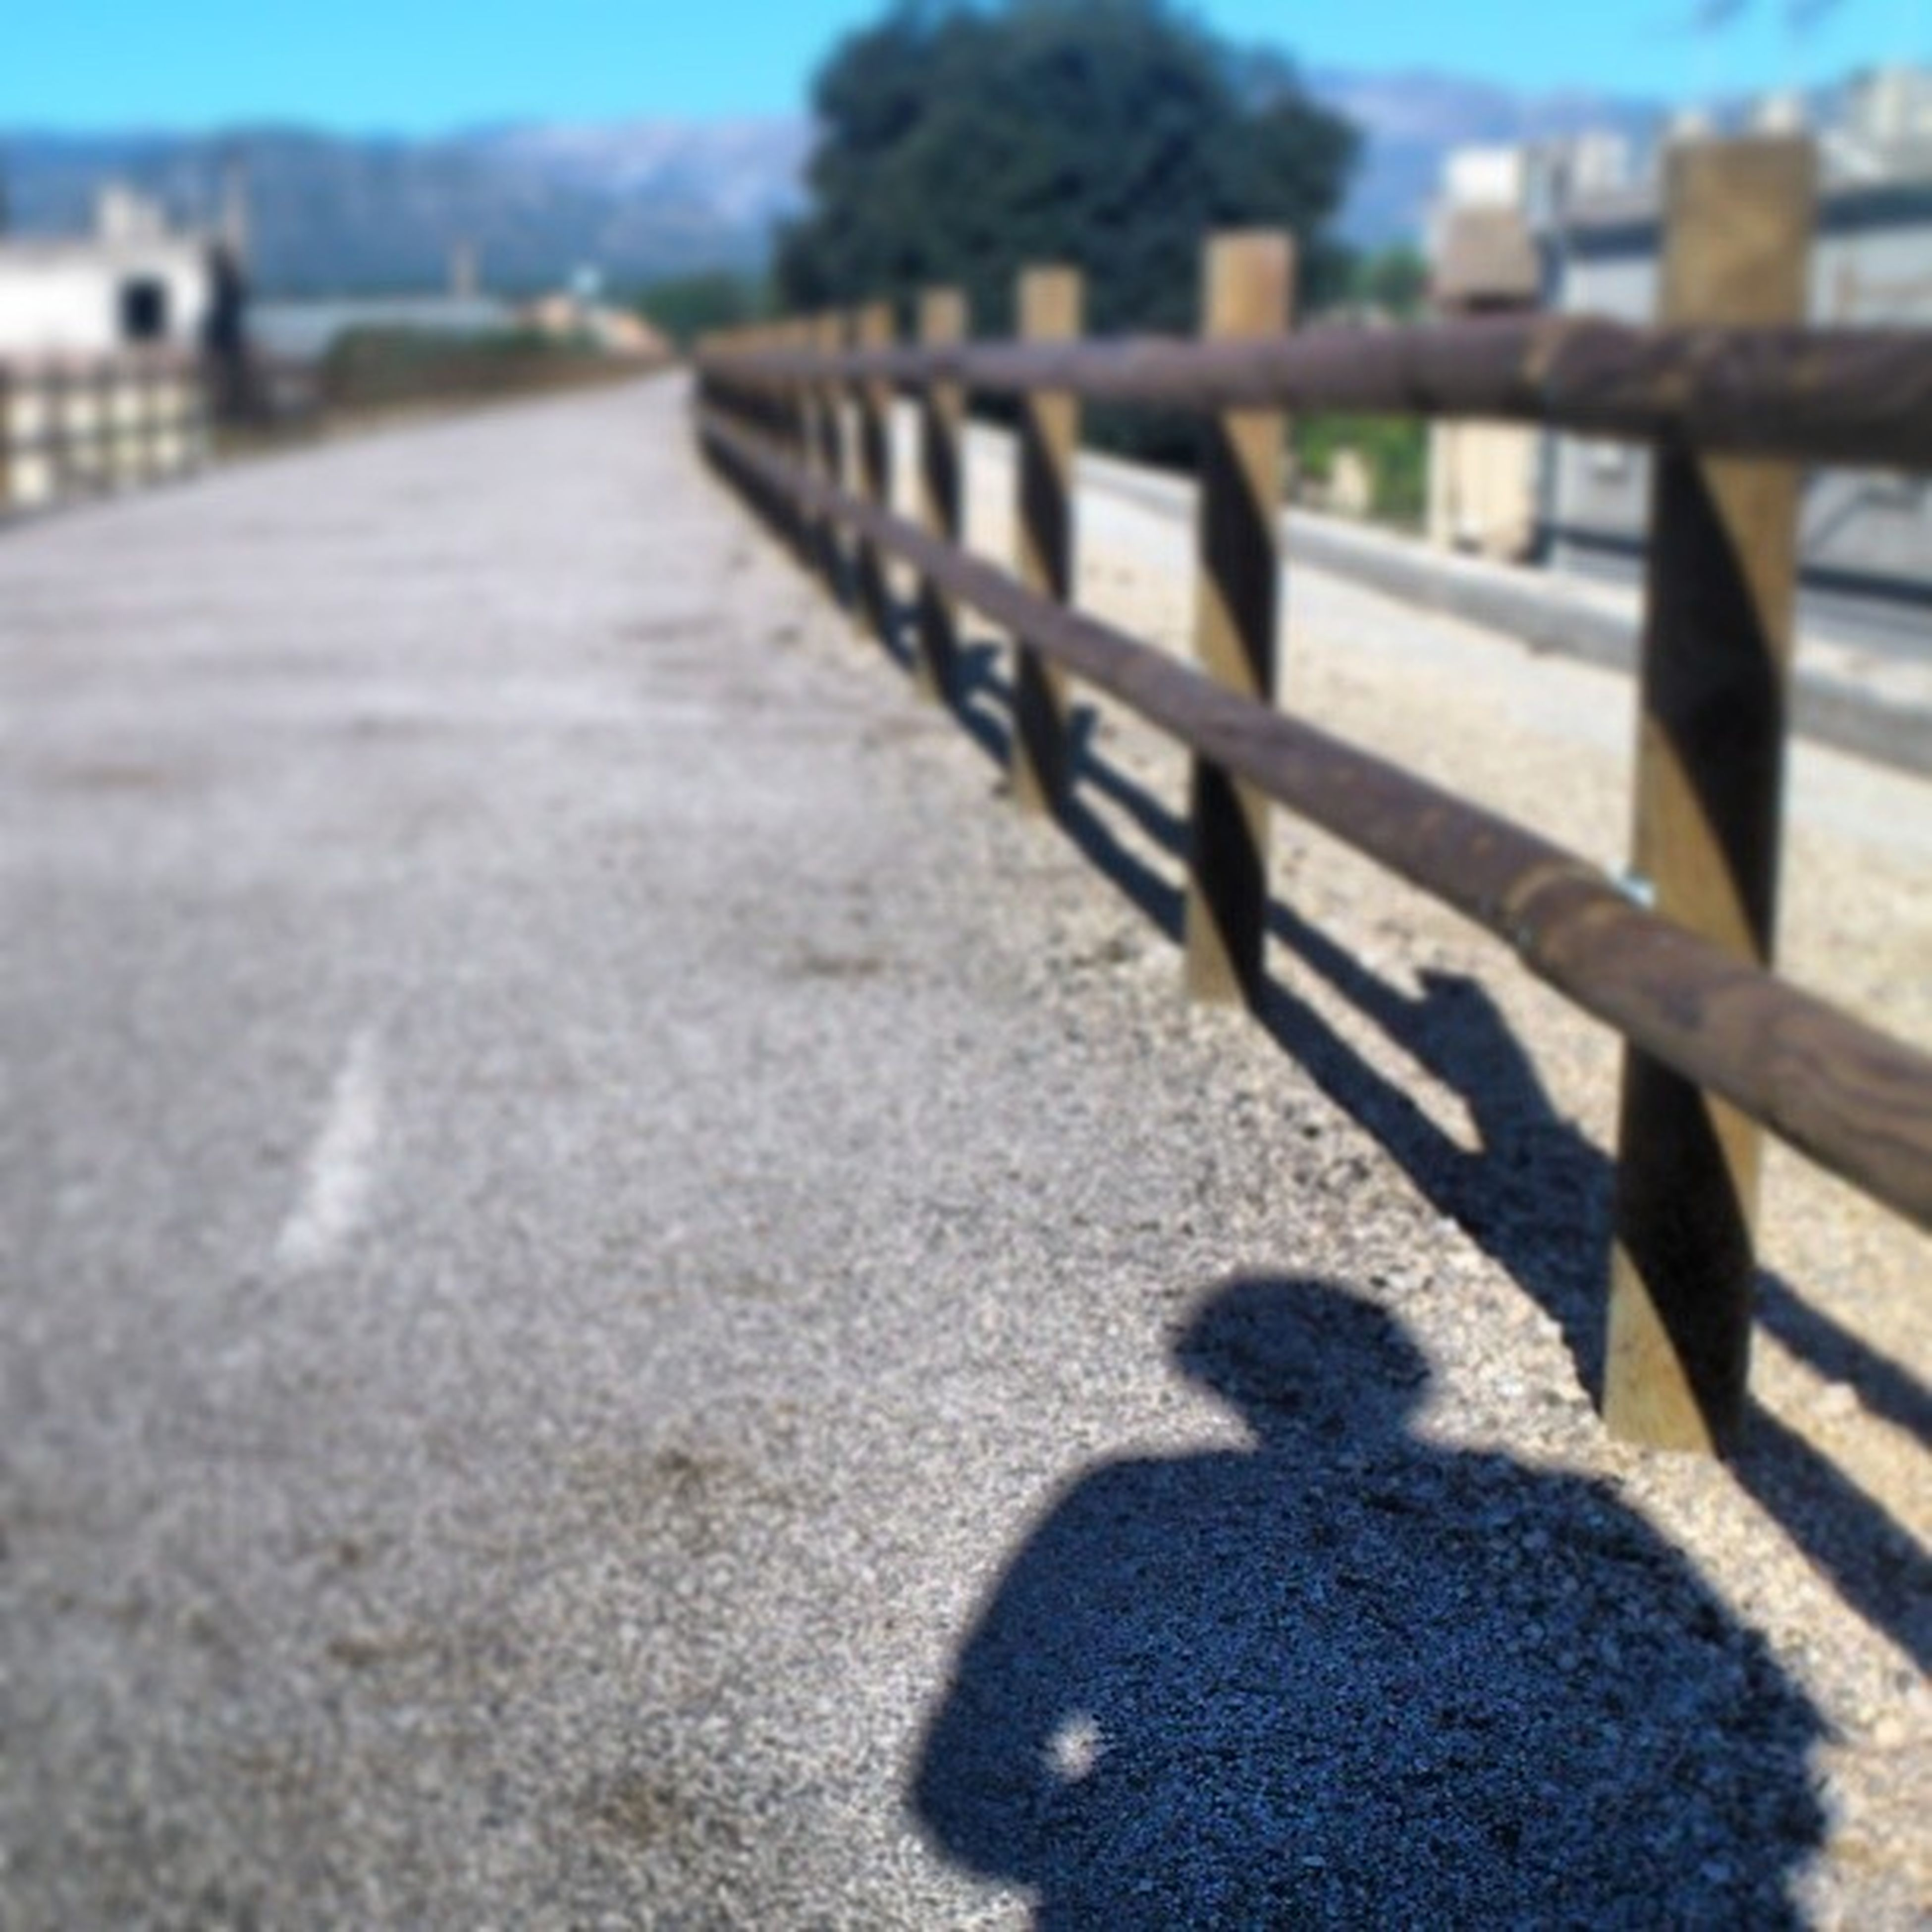 shadow, focus on foreground, selective focus, sunlight, surface level, street, incidental people, outdoors, railing, day, road, close-up, built structure, bench, sunny, walking, sidewalk, nature, sand